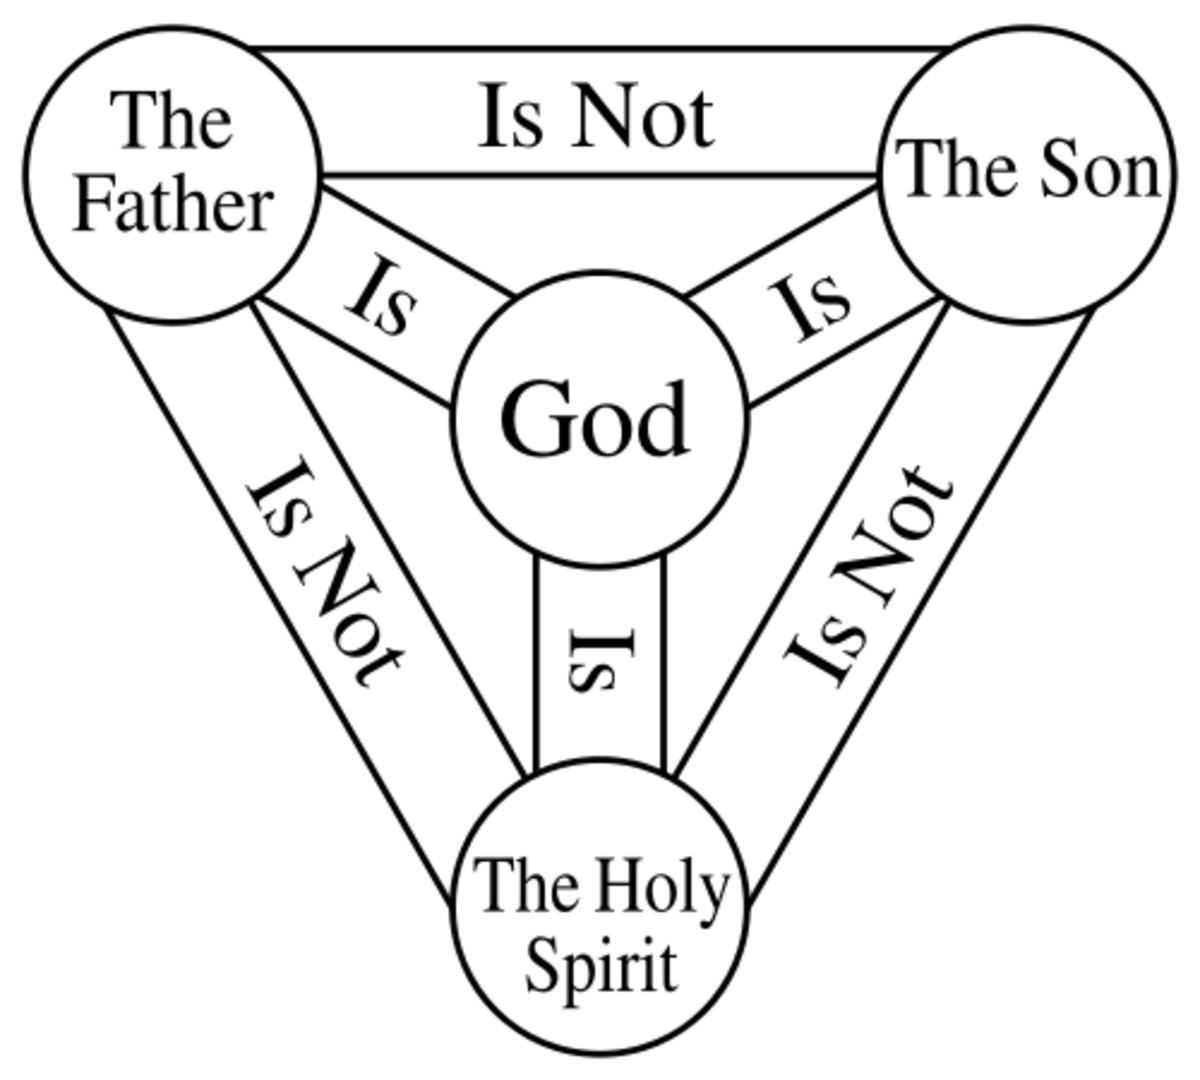 Clarifying the Trinity: Attributes of God the Father, Son, and Holy Spirit